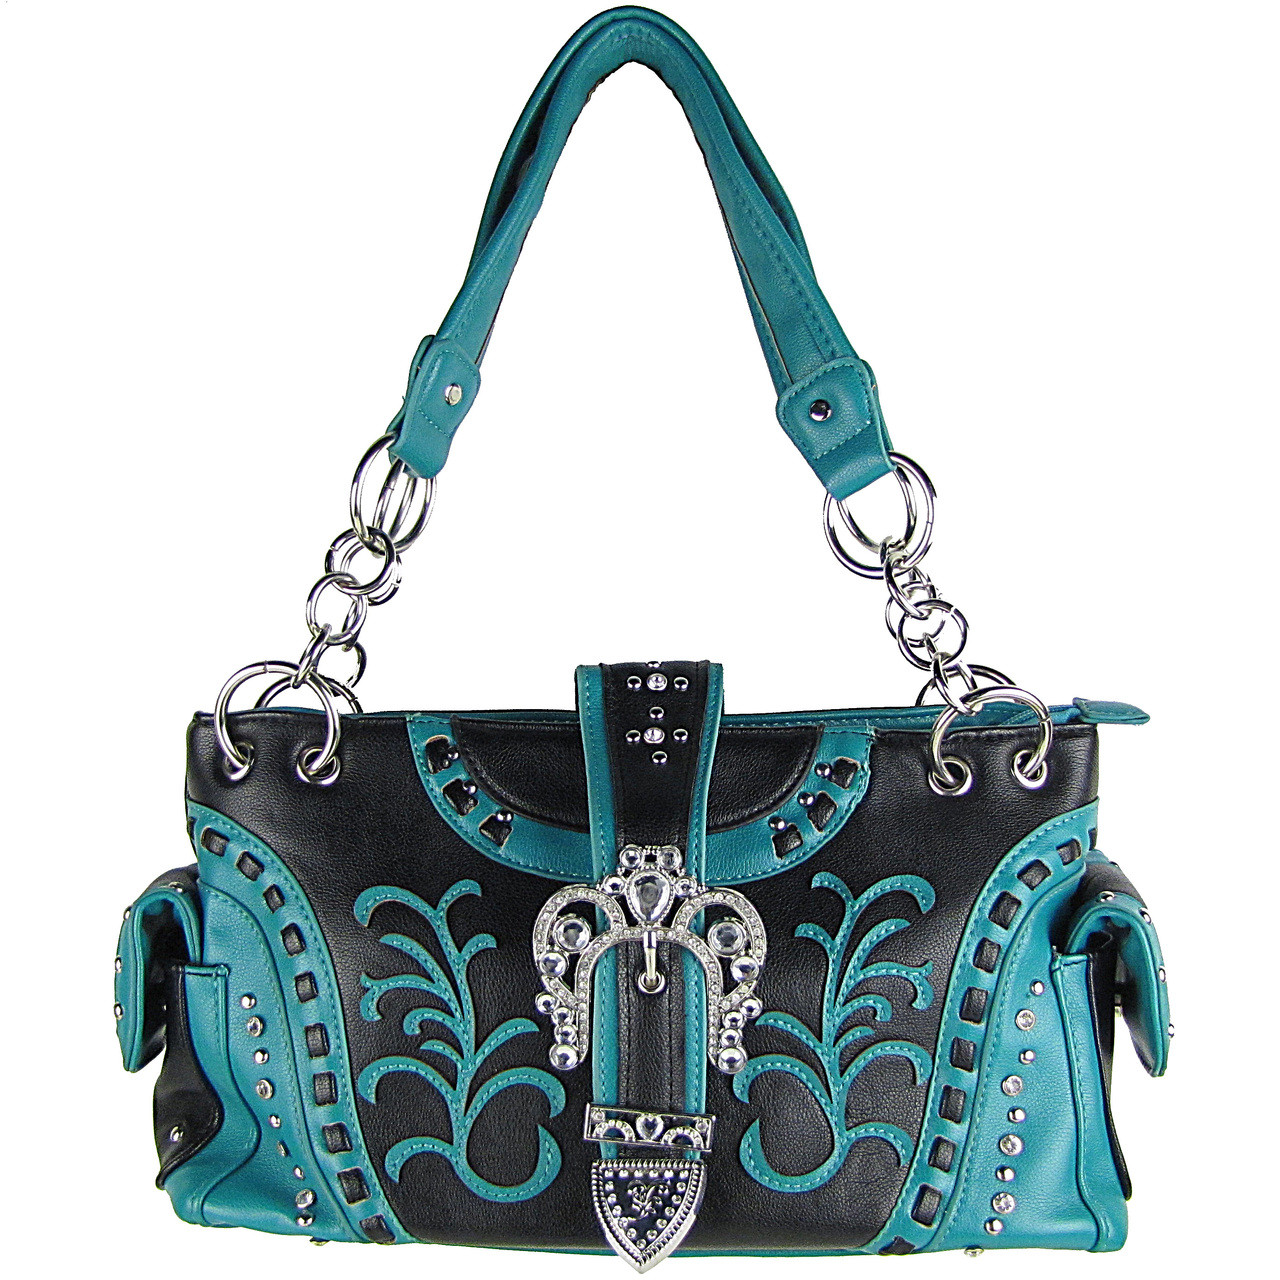 TURQUOISE RHINESTONE BUCKLE LOOK SHOULDER HANDBAG HB1-39W71TRQ